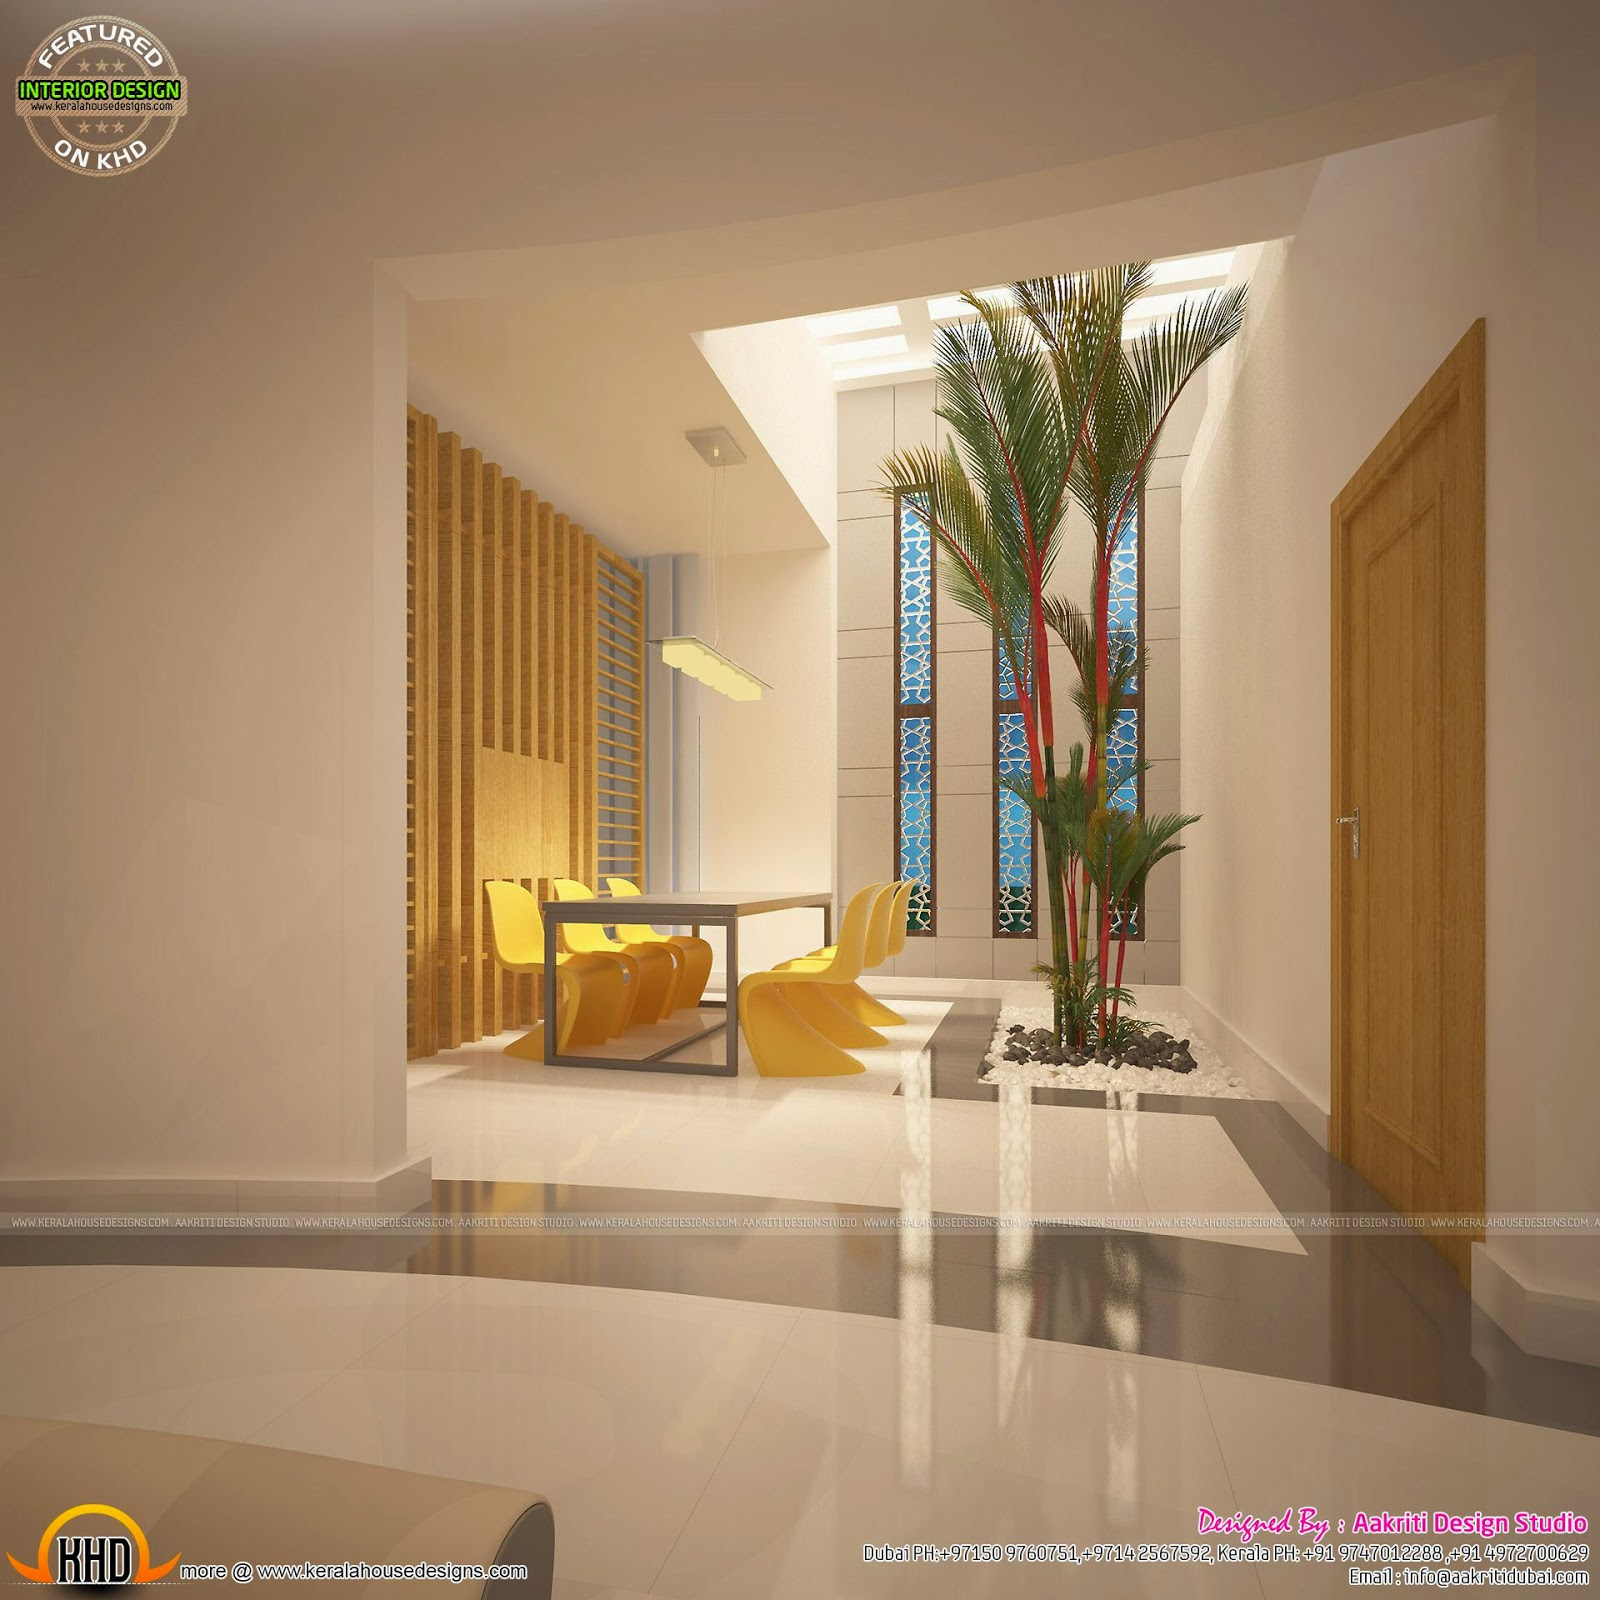 Awesome interiors of living kitchen and bathroom kerala for Living room interior in kerala